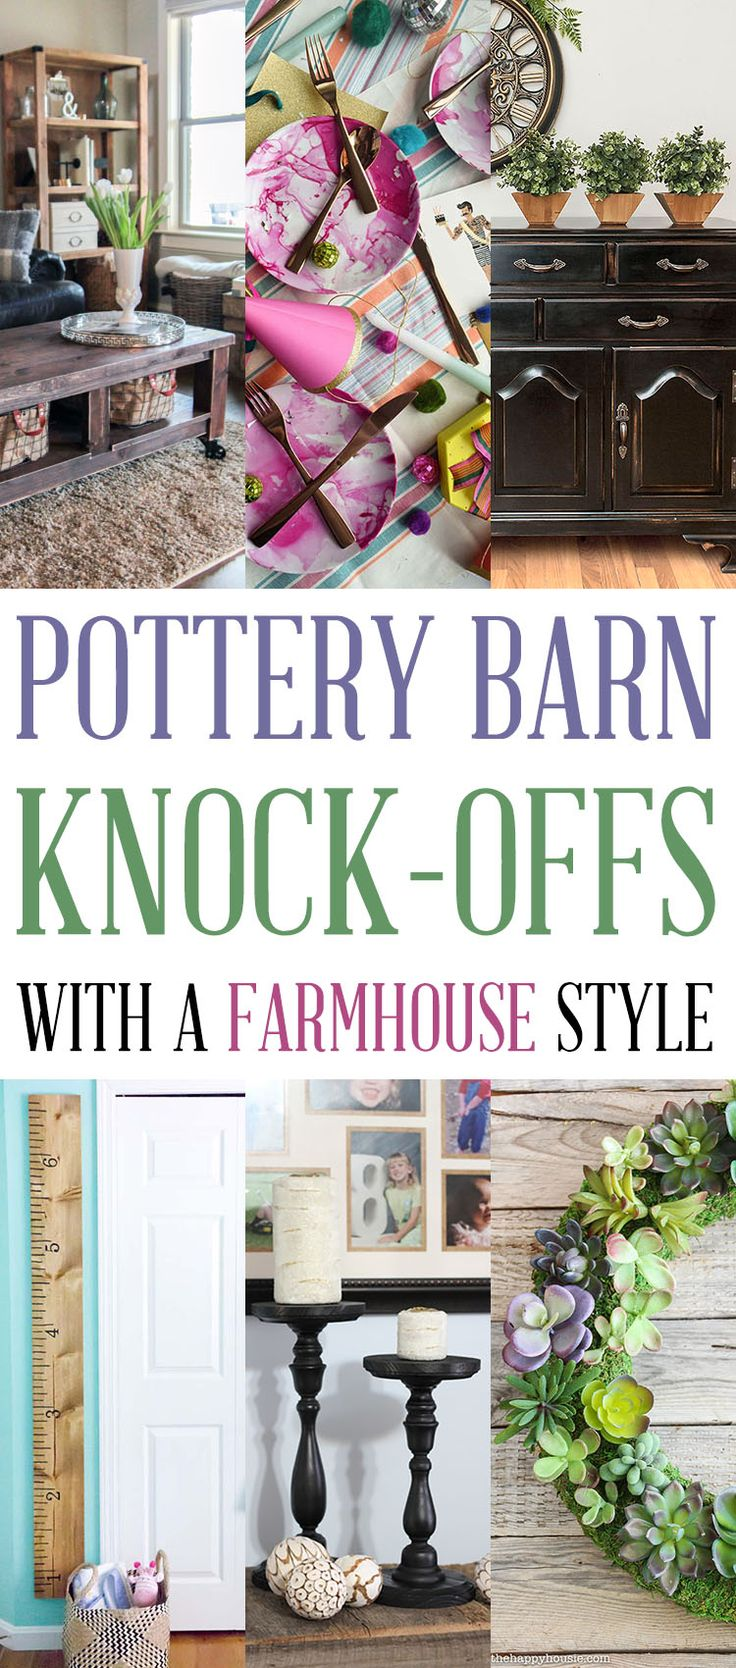 Pottery Barn Knock Offs with a Farmhouse Style